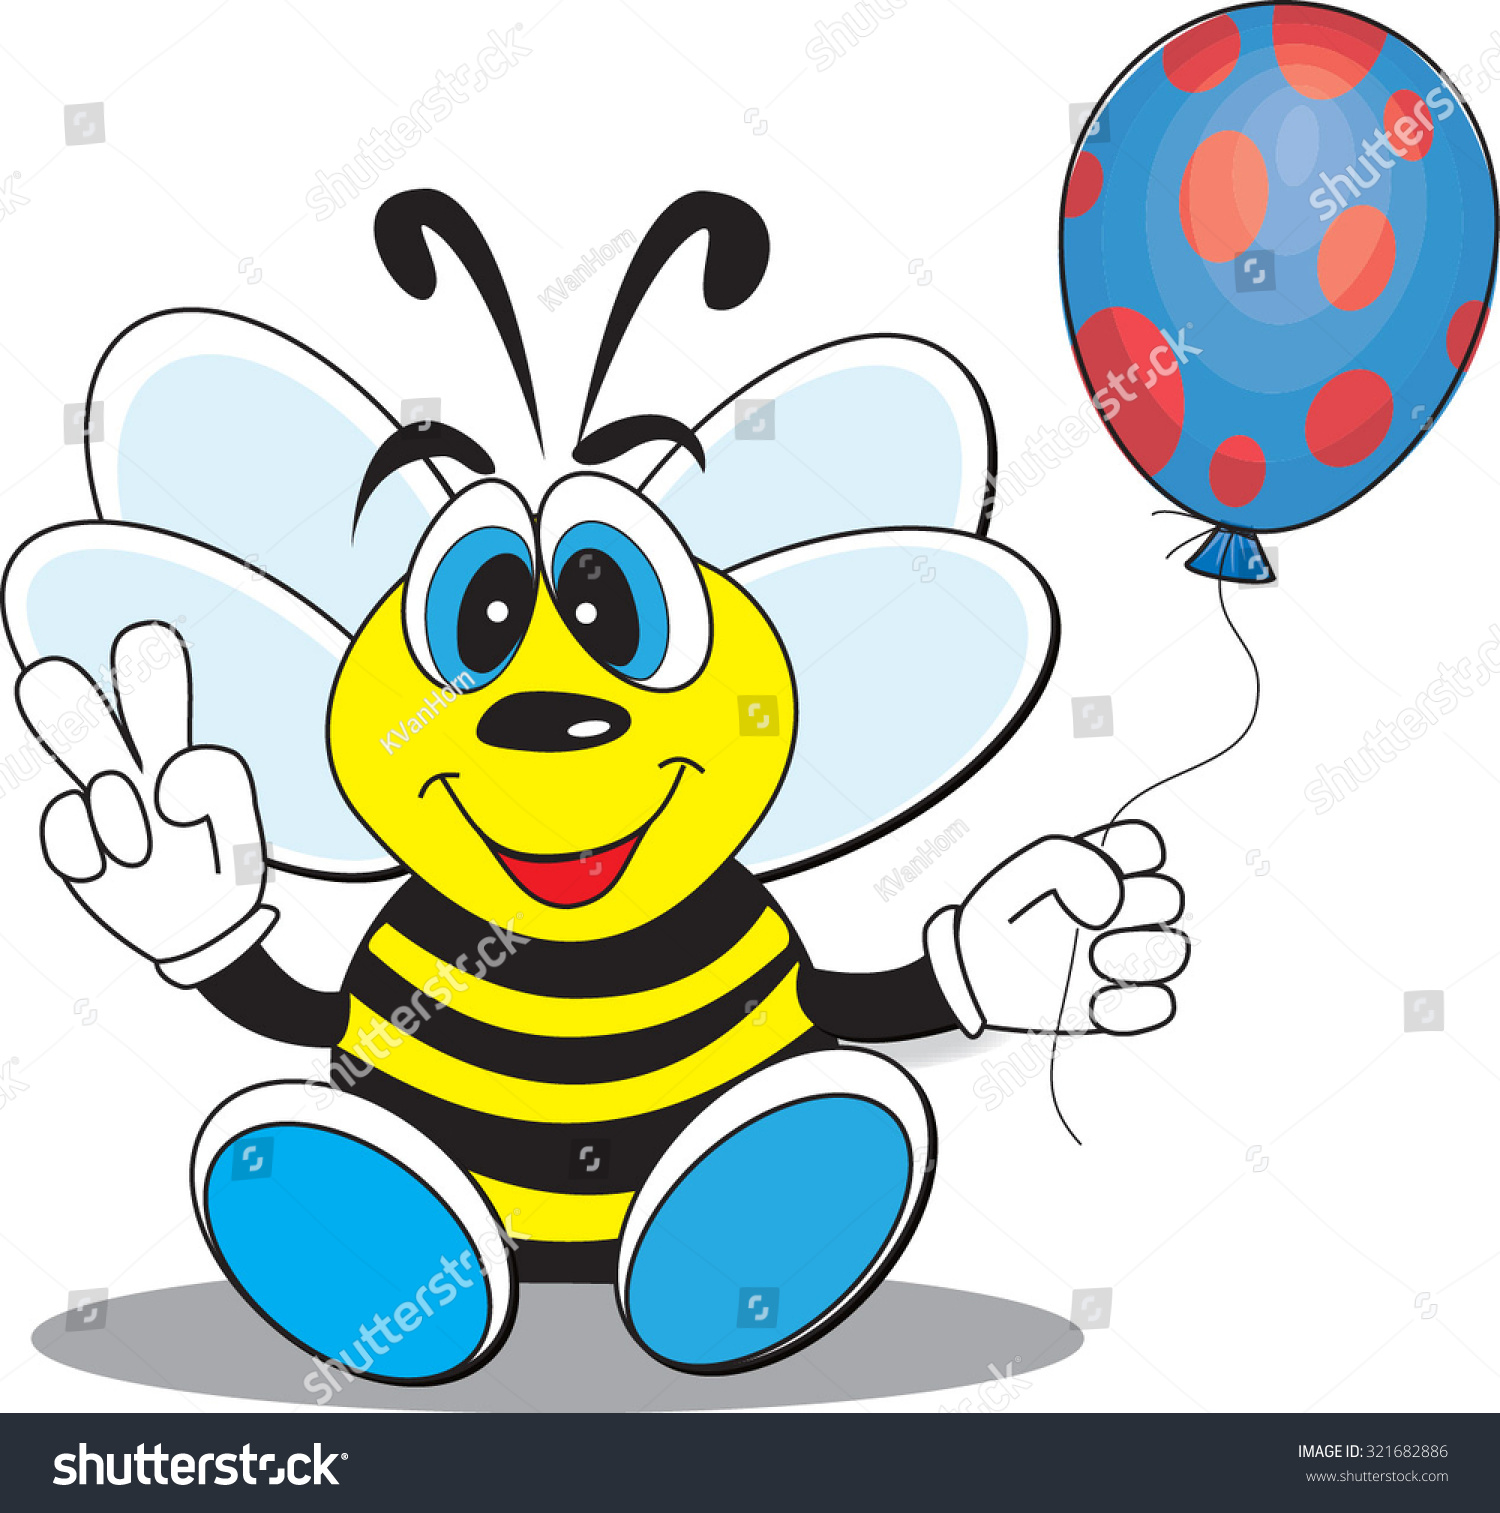 Cartoon bumble bee cartoon style holding stock vector 321682886 cartoon bumble bee cartoon style holding a balloon for a kids party or mascot character symbol biocorpaavc